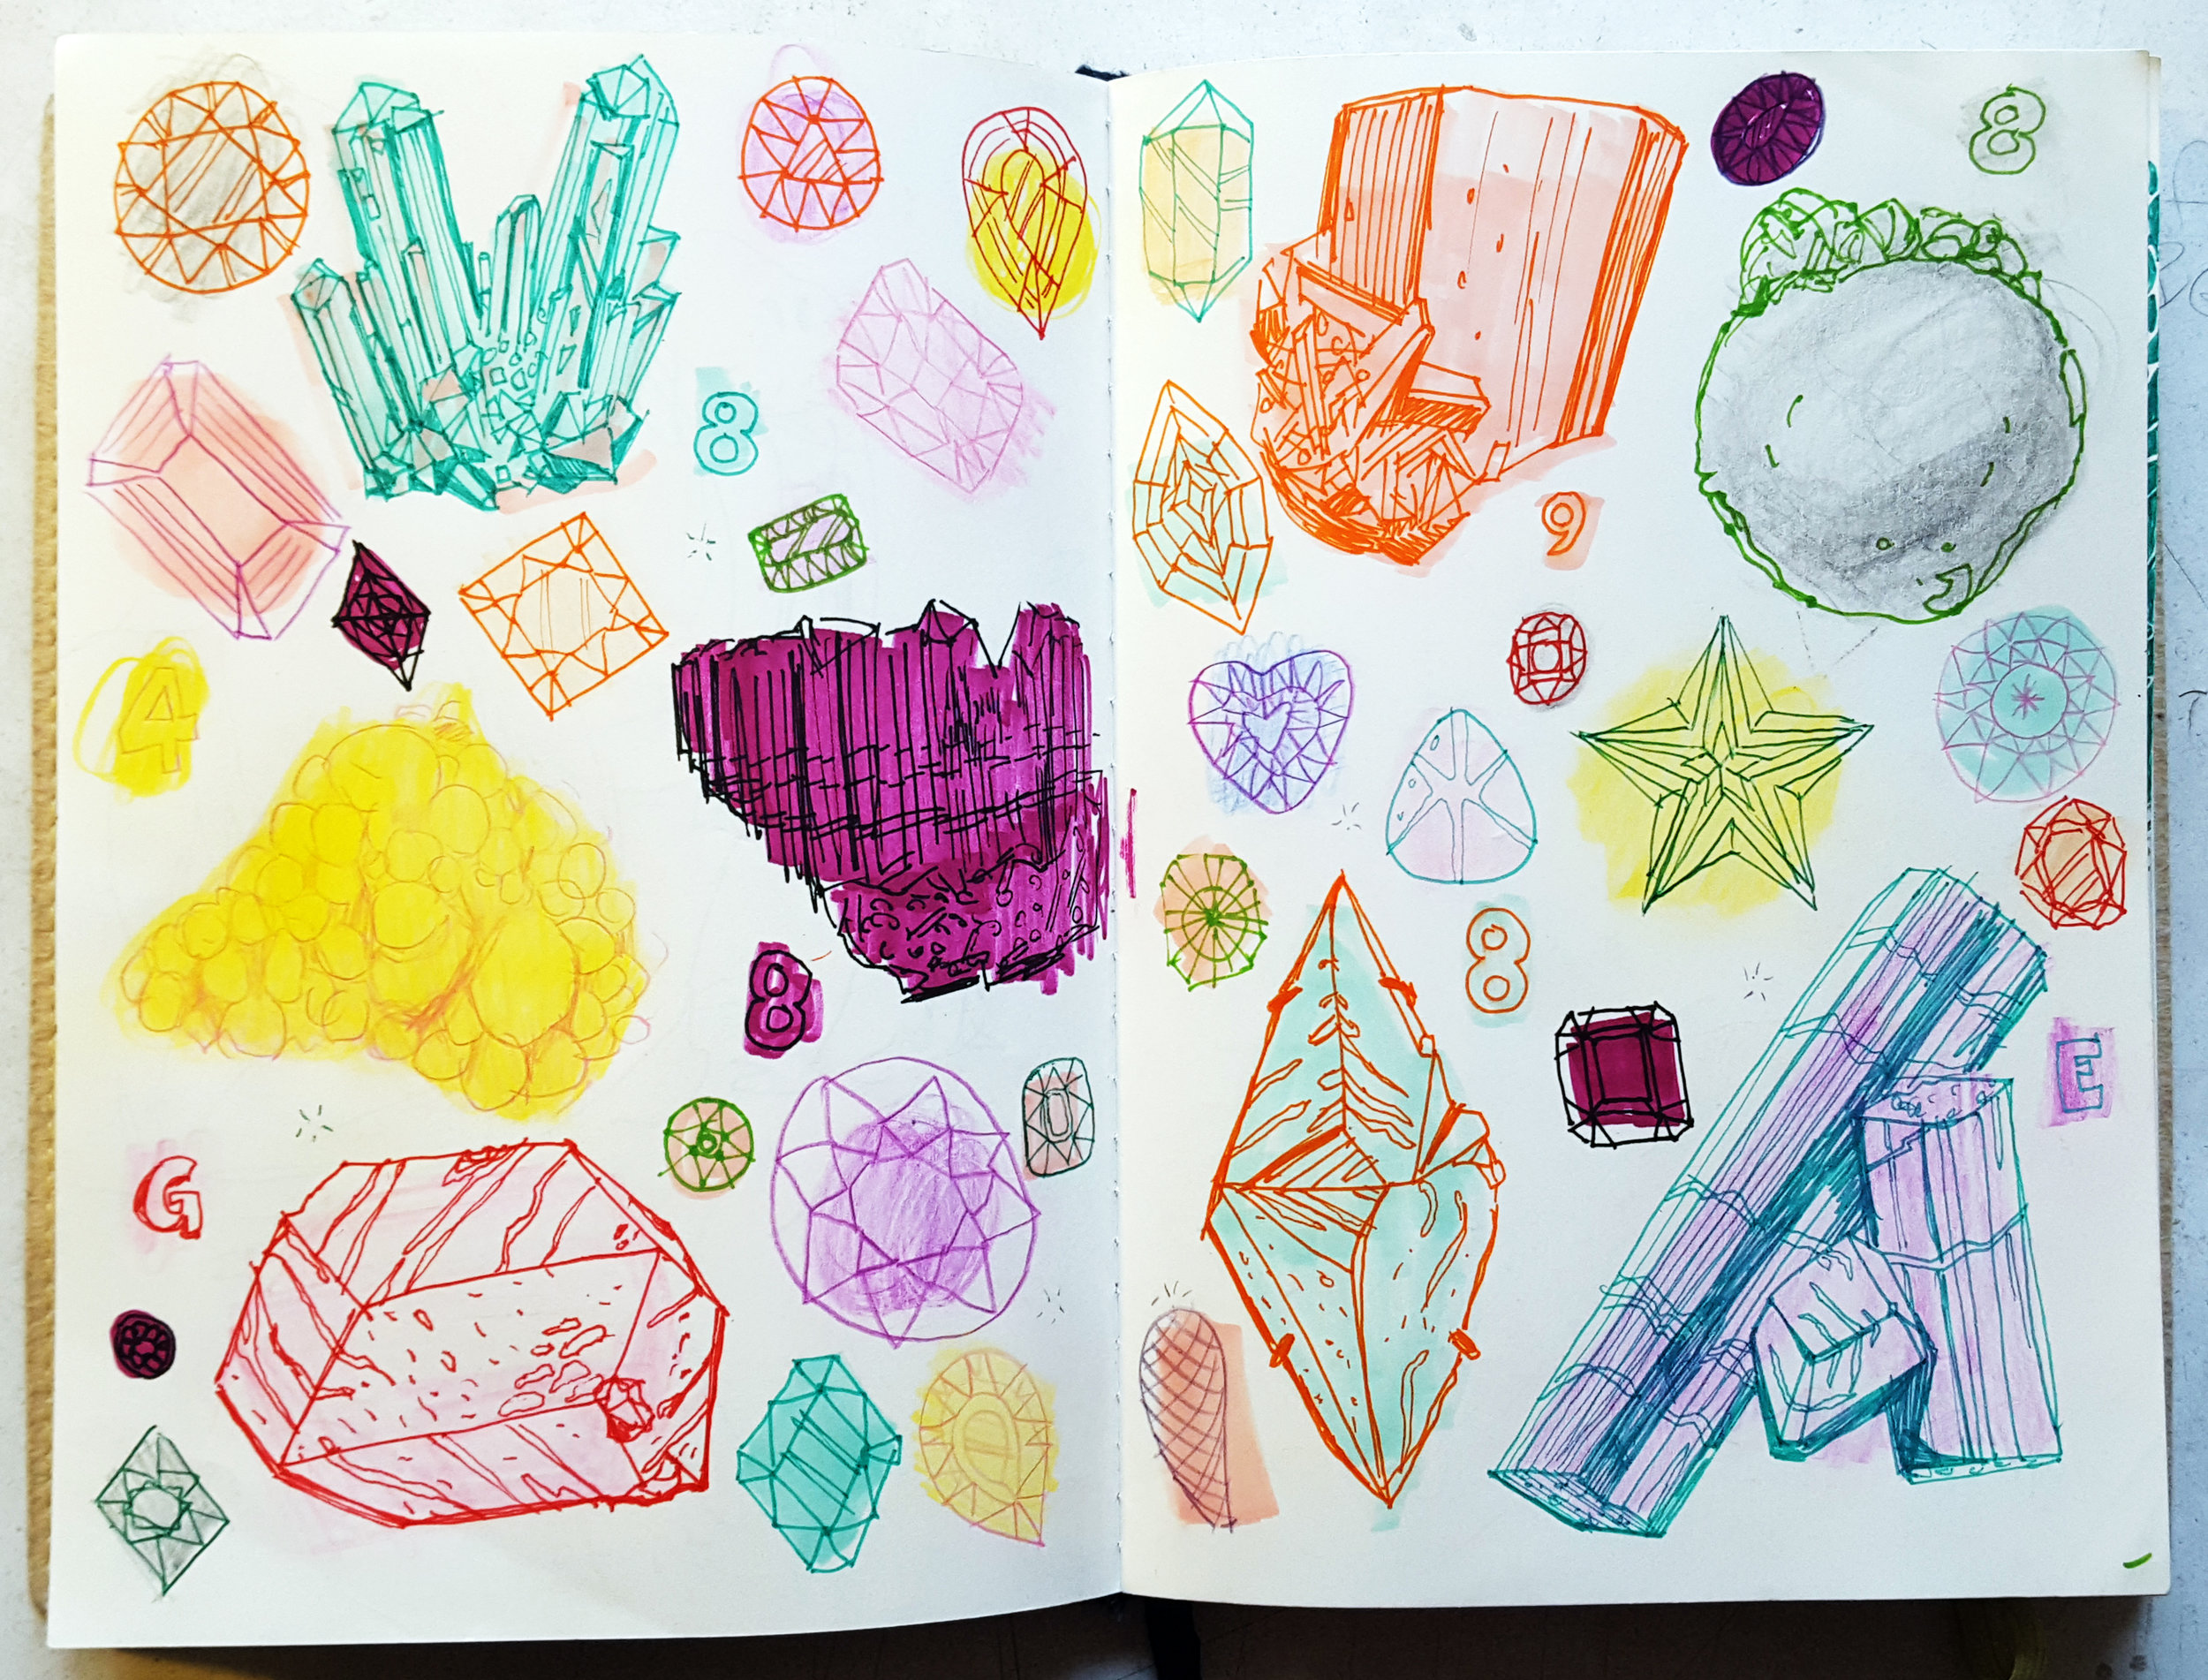 gems sketchbook.jpg